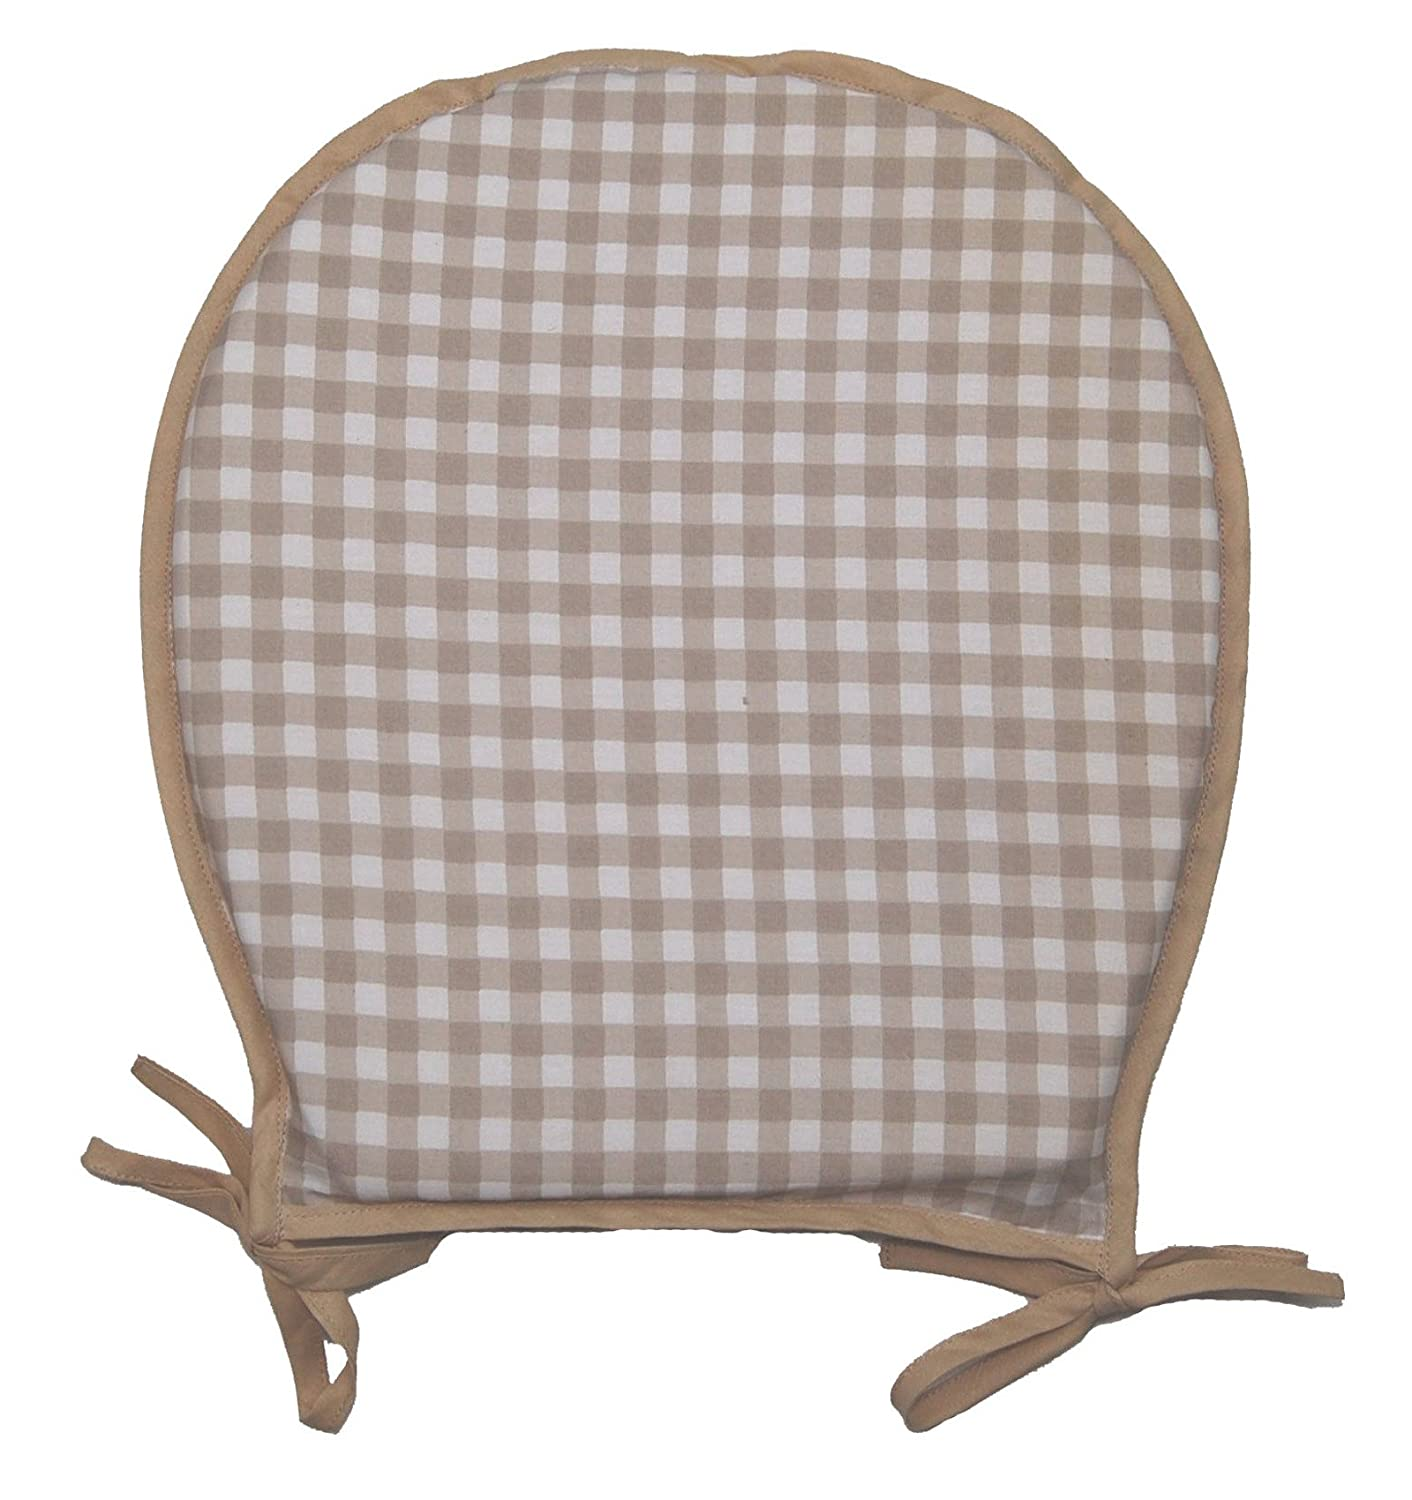 Gingham Check 100% Cotton Seat Pad Square Garden Kitchen Dining Chair Cushion 40cm x 37cm (Beige) Classic Home Store